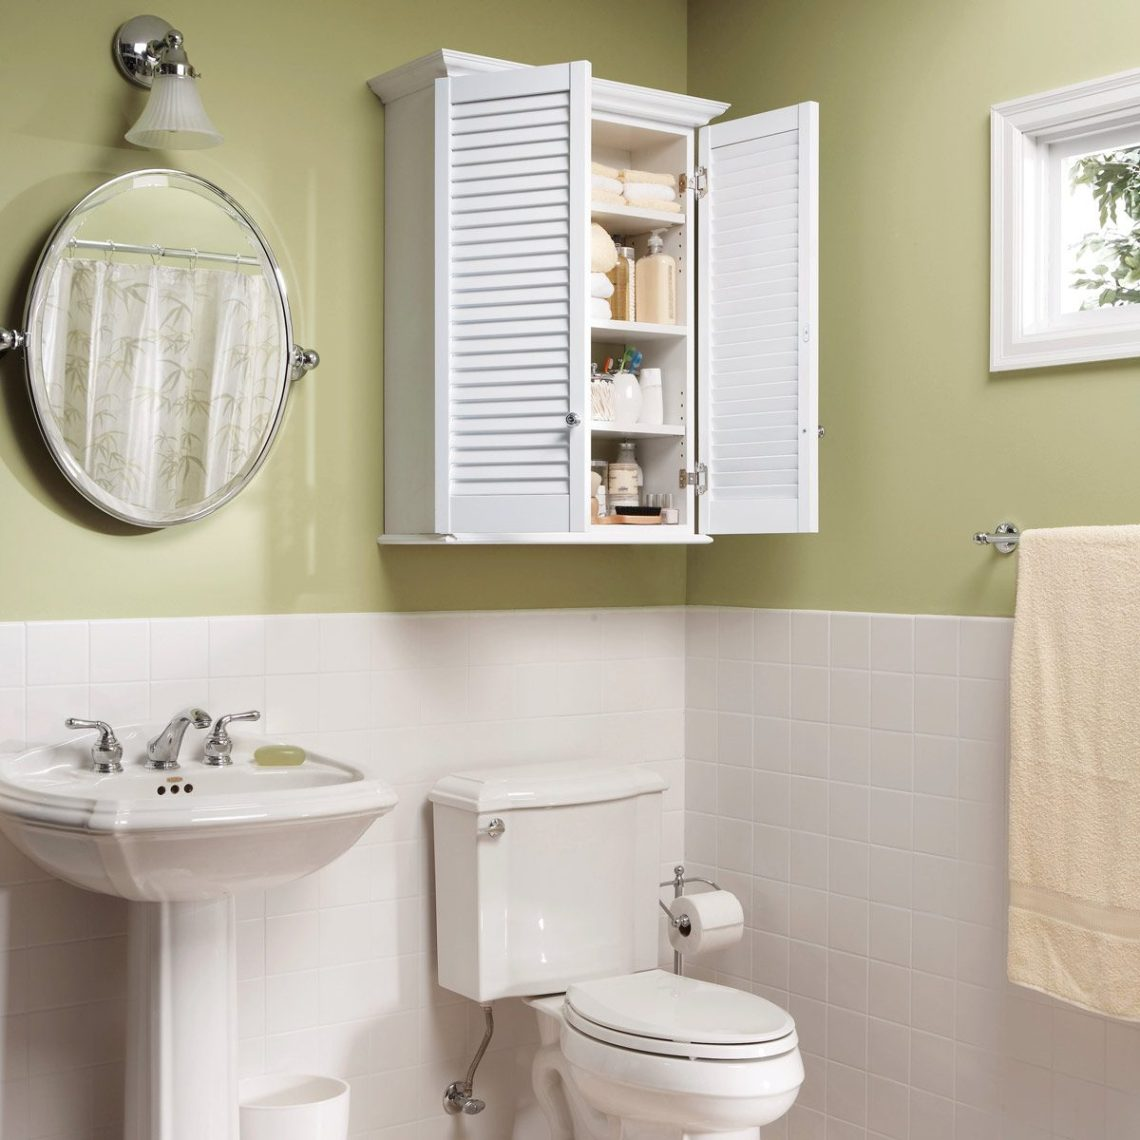 Fhoct___ Super Simple Bathroom Cabinet